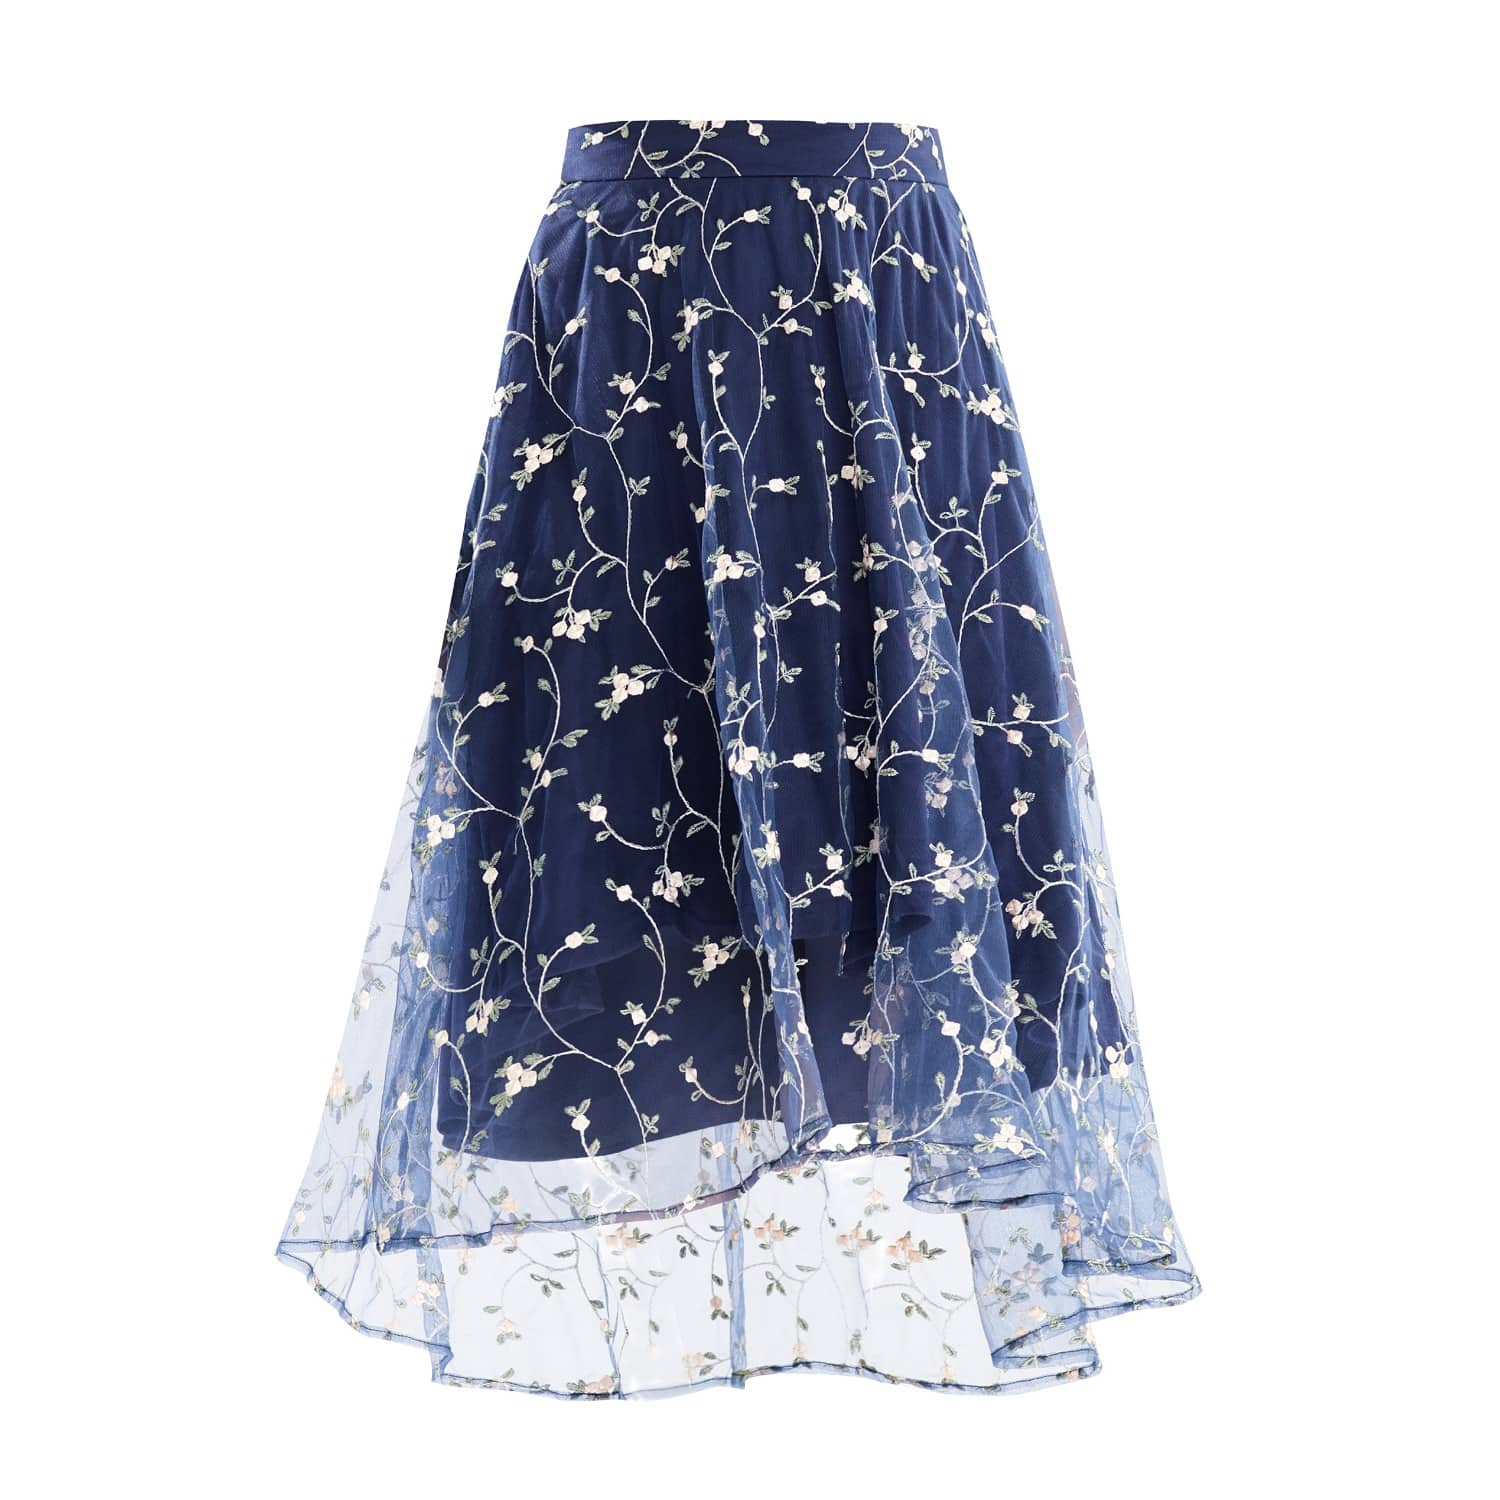 ea09b54590 Midi Skirt with Embroidered Floral Tulle Overlay & Dip Hem | PAISIE ...